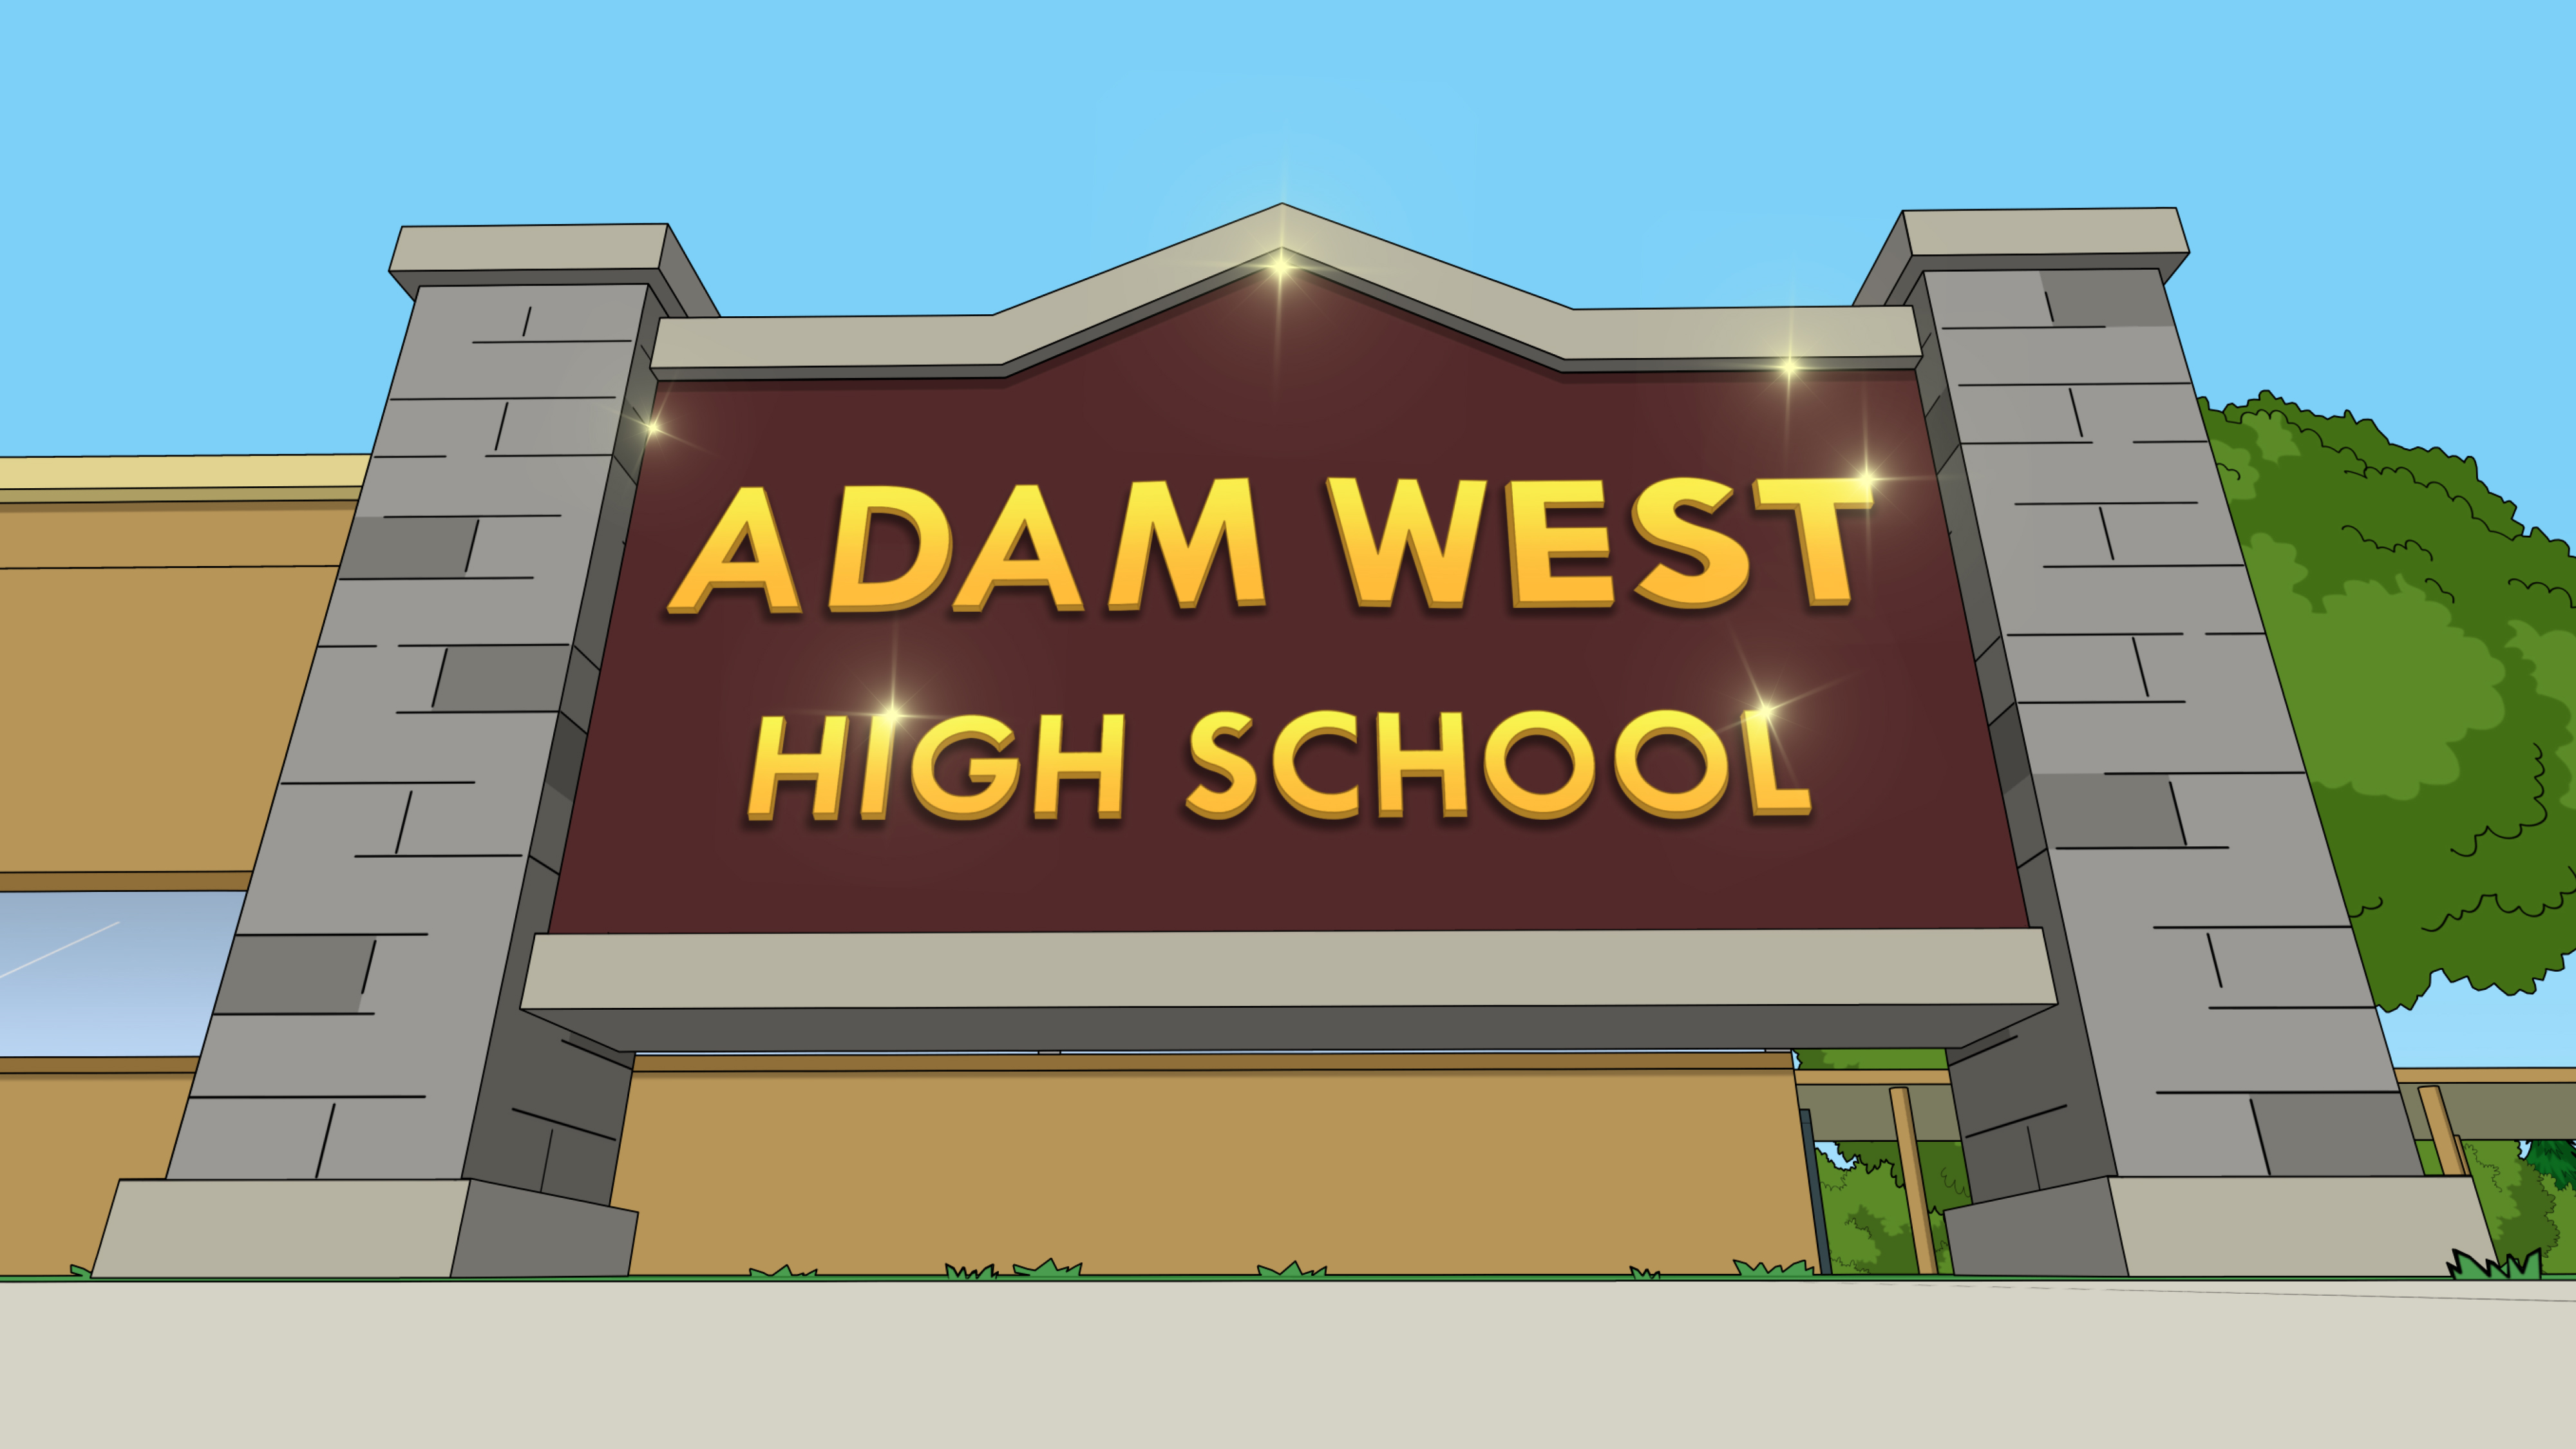 Adam West High